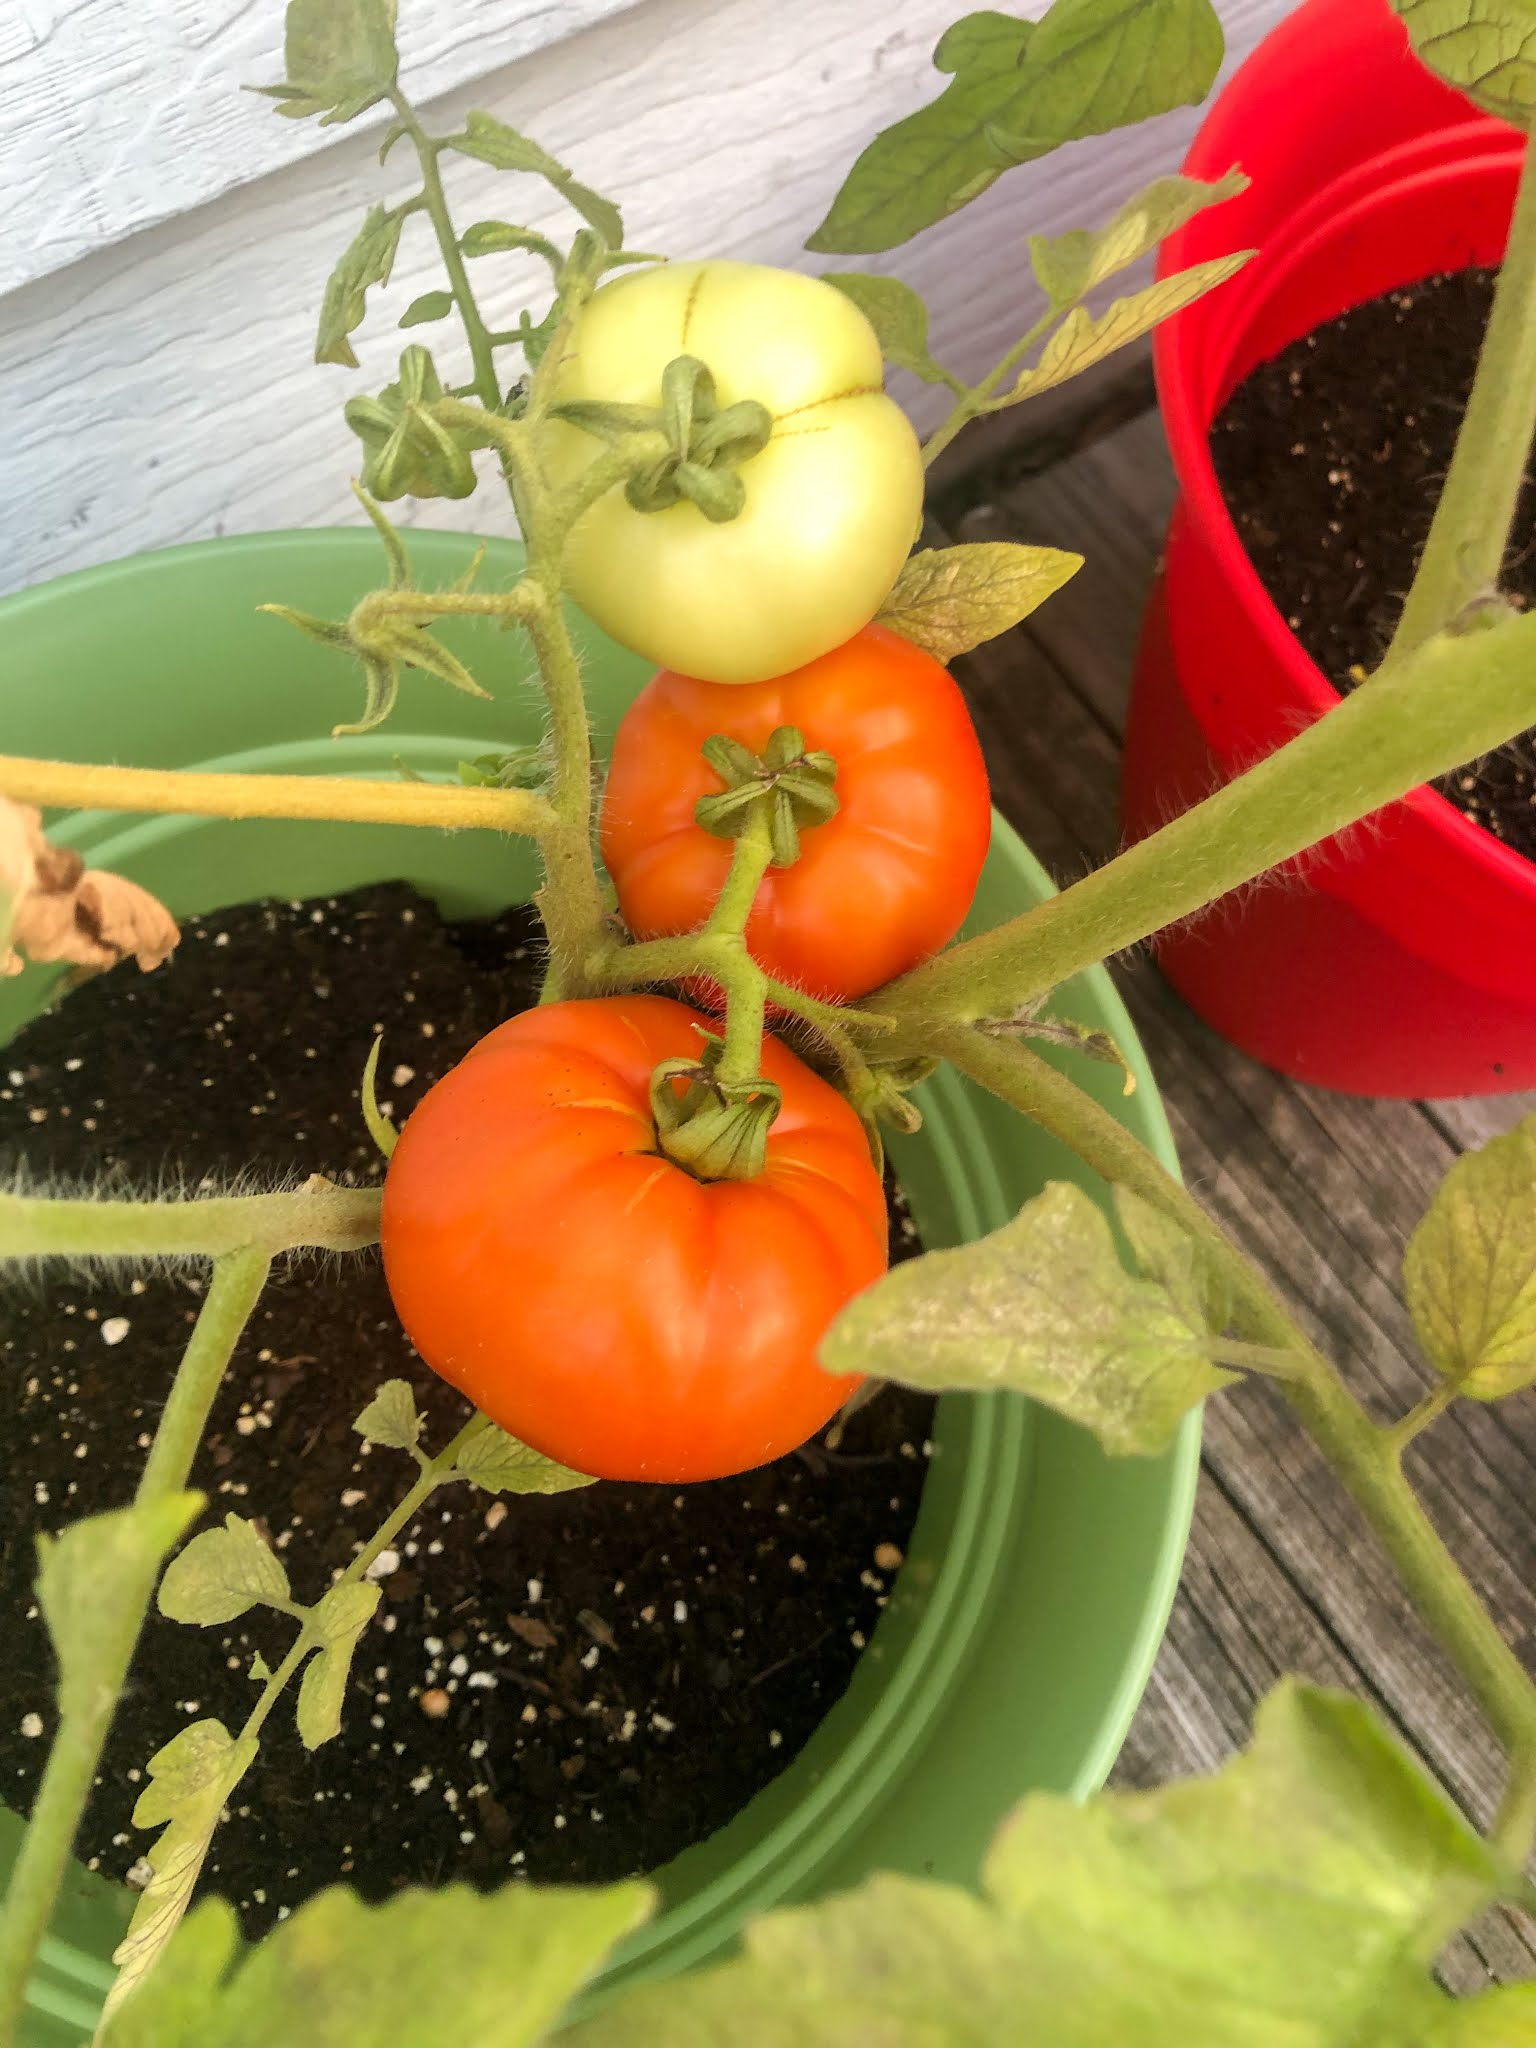 Two red tomatoes in a pot, one green